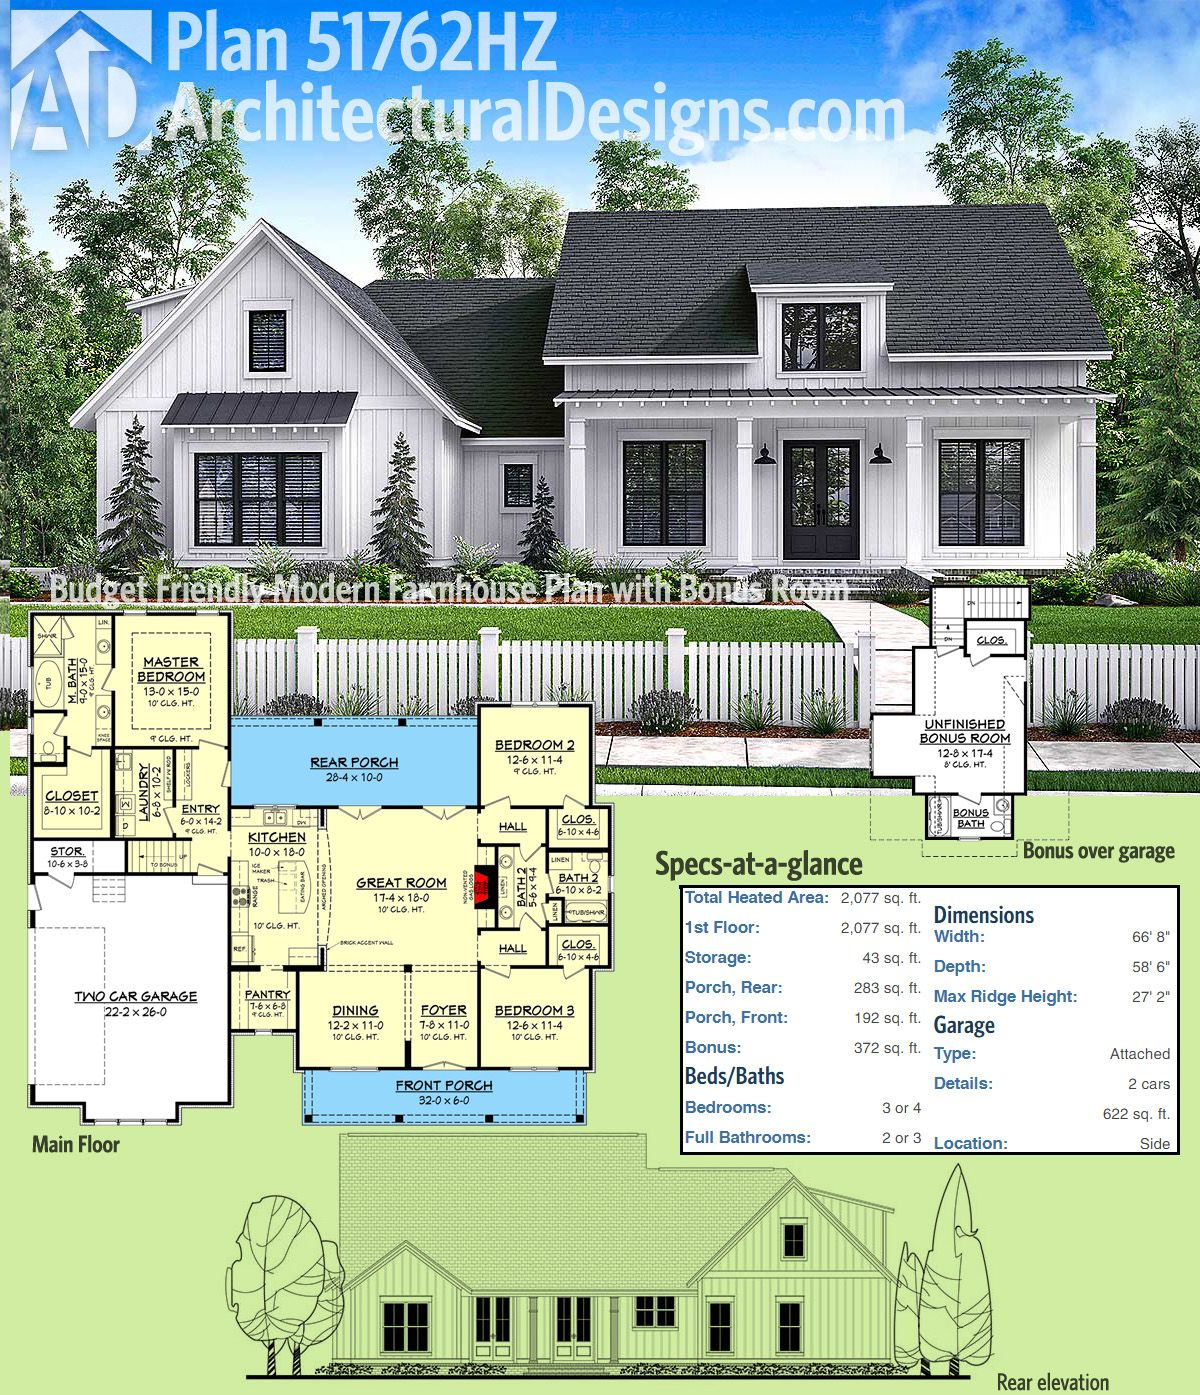 Plan 51762hz budget friendly modern farmhouse plan with Modern farm homes